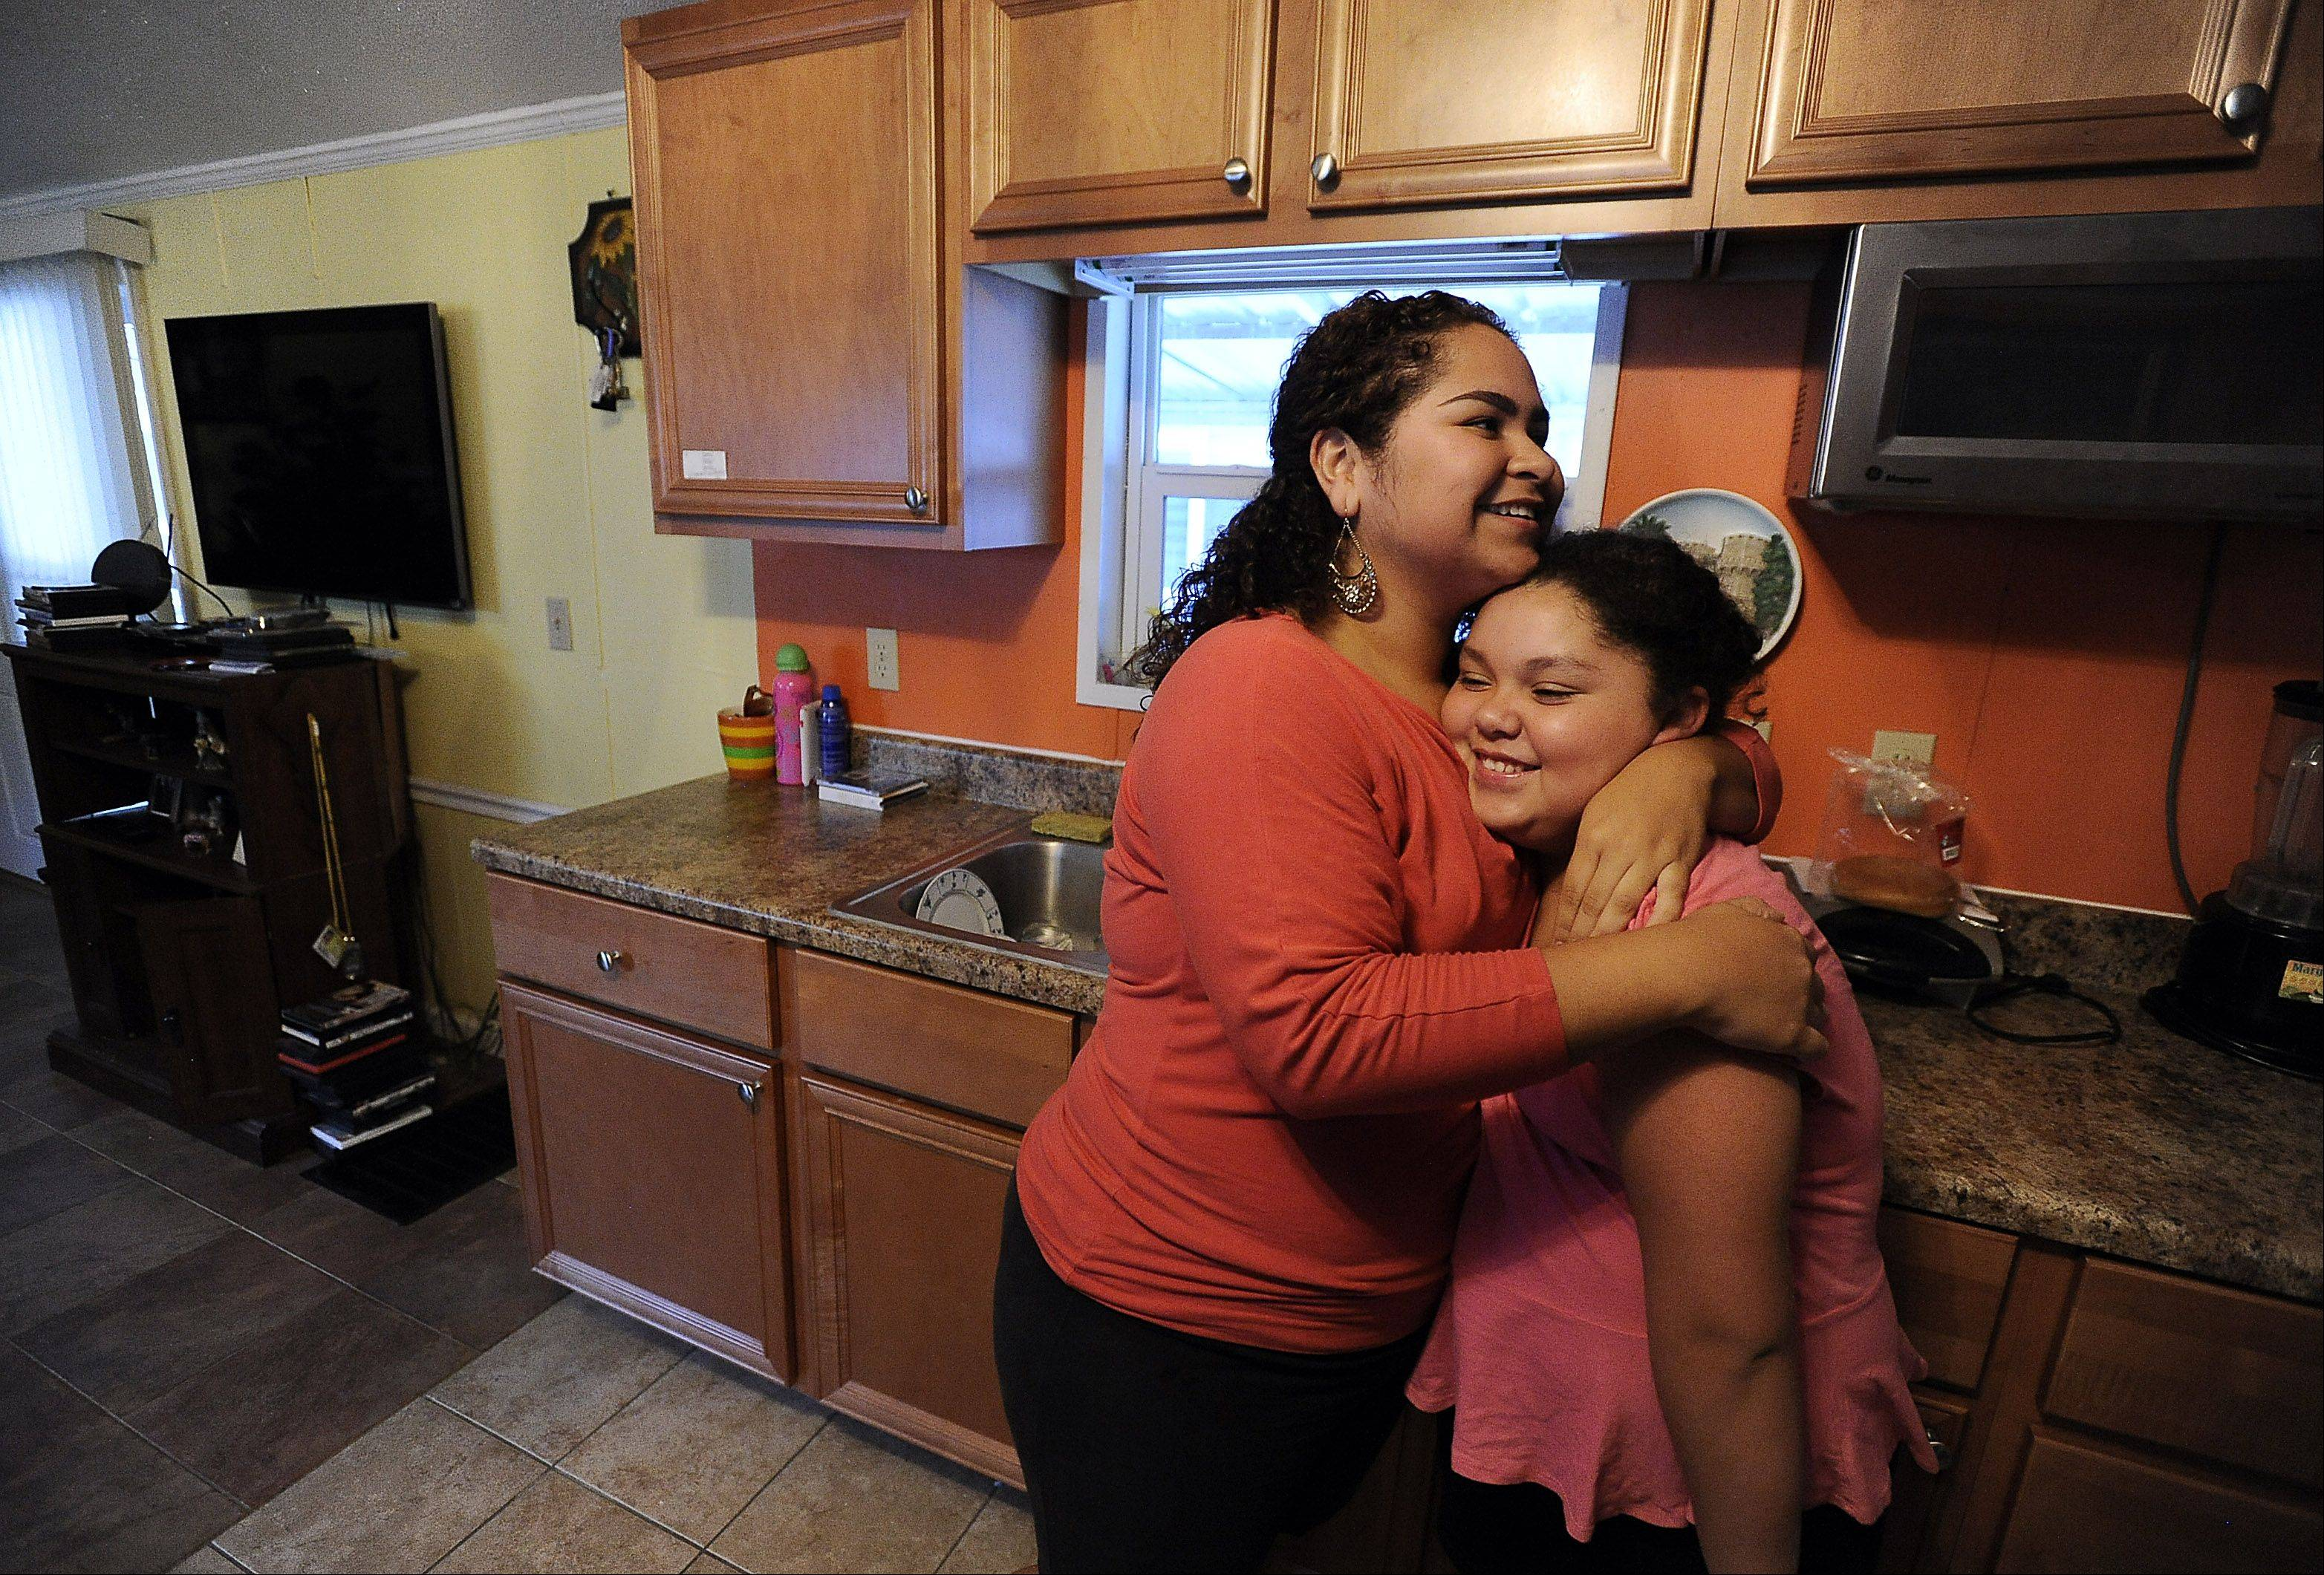 Greta Ramirez, 12, right, and her sister Karen, 22, who live near Des Plaines, were always close. They're more so in the two years since the death of their mother, Alicia Ramirez, at the hands of their father, Heriberto Ramirez, who was convicted of her murder last year.